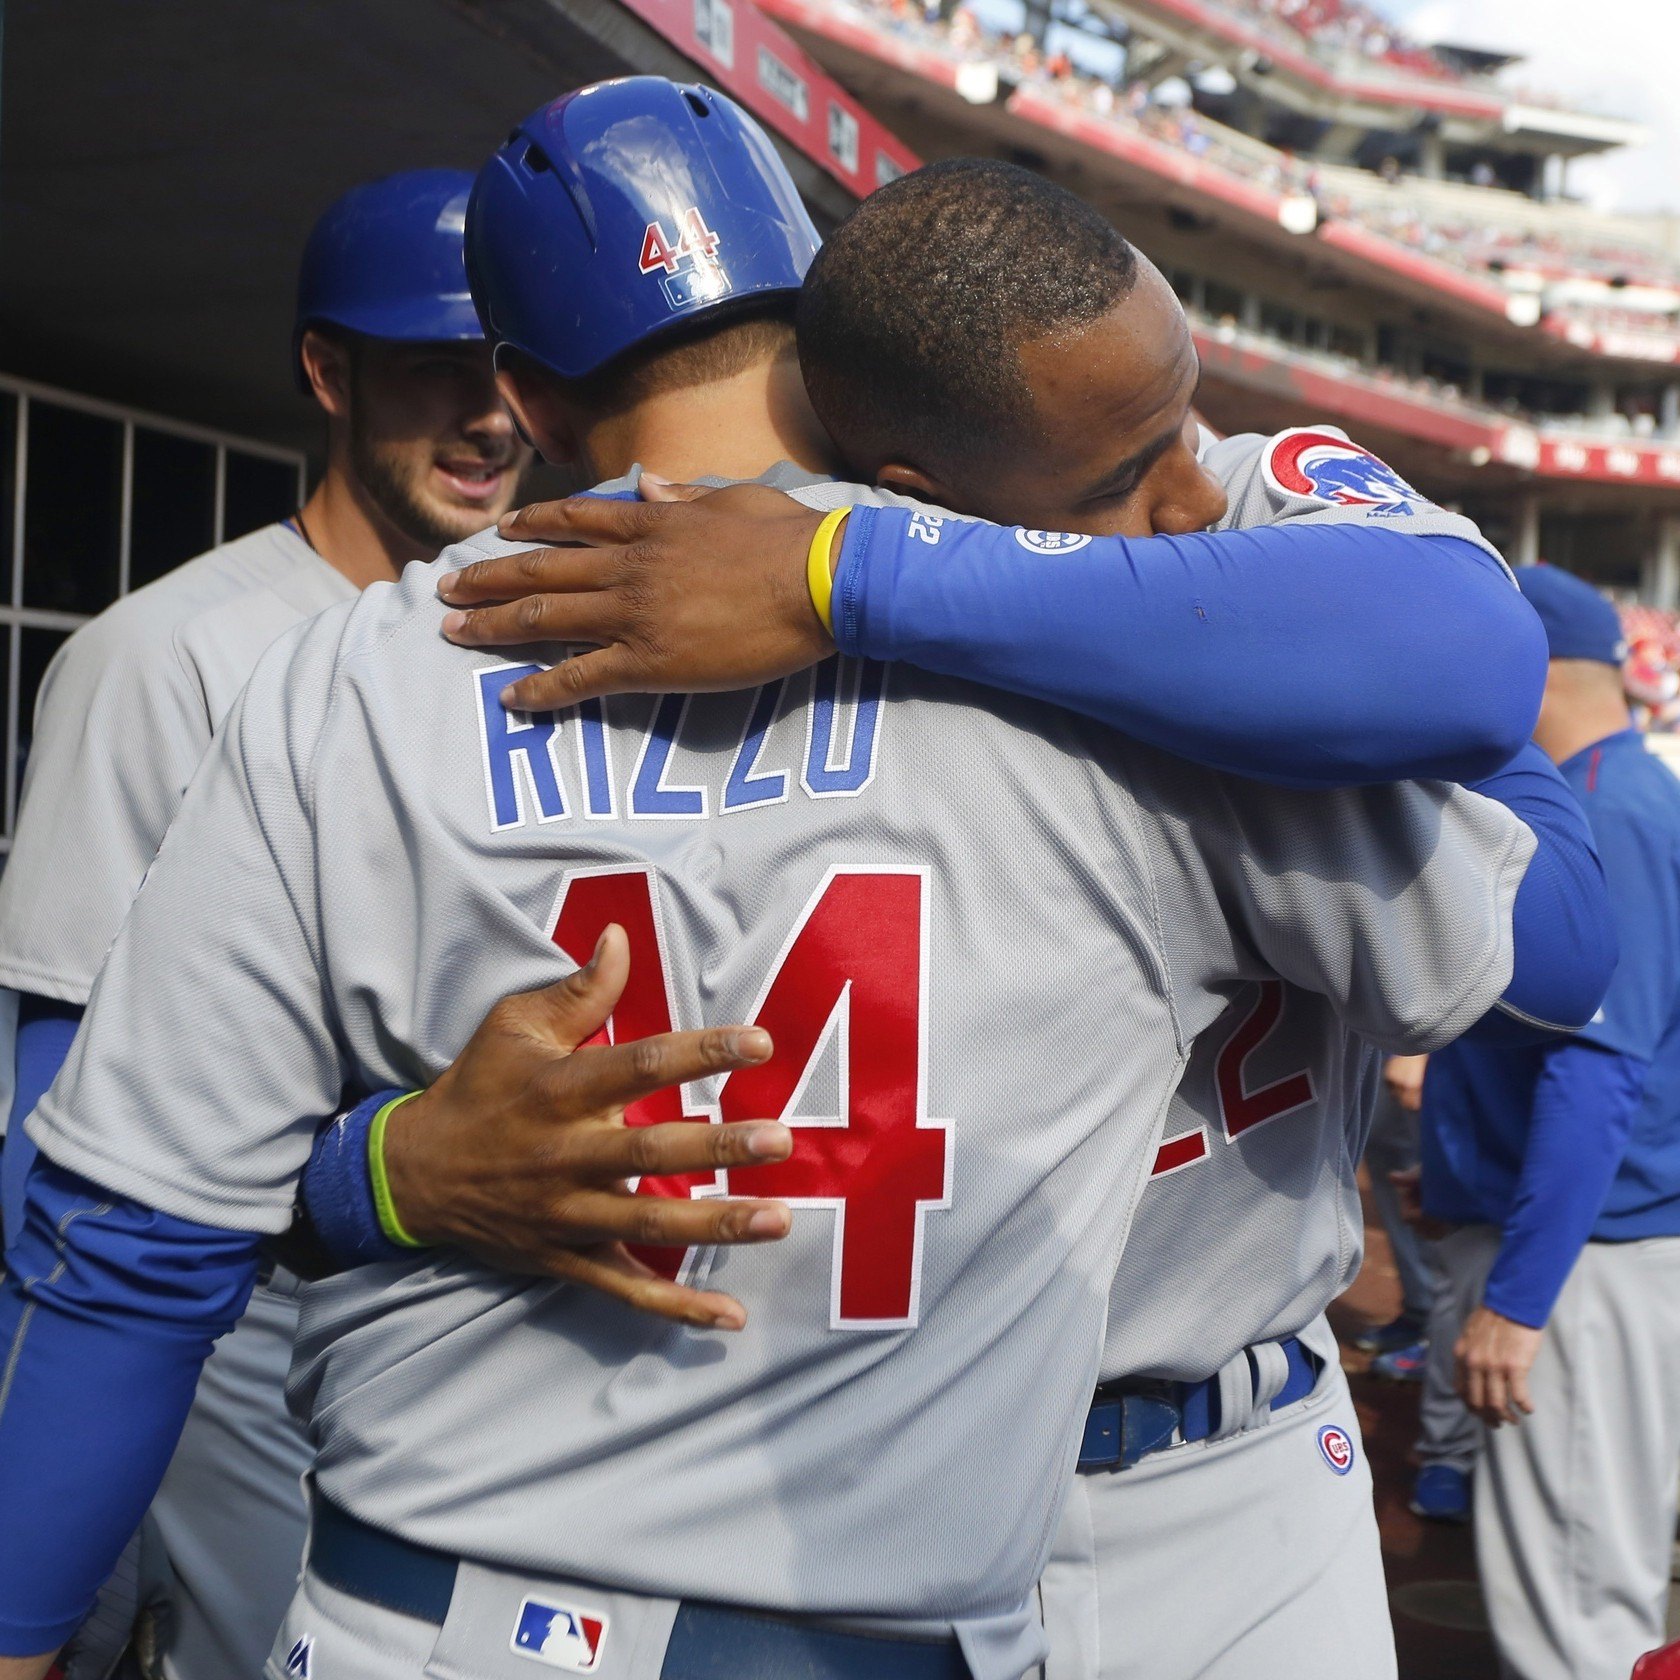 Blessings-and-curses-and-the-cubs-david-roths-weak-in-review-1475773408.jpg?crop=0